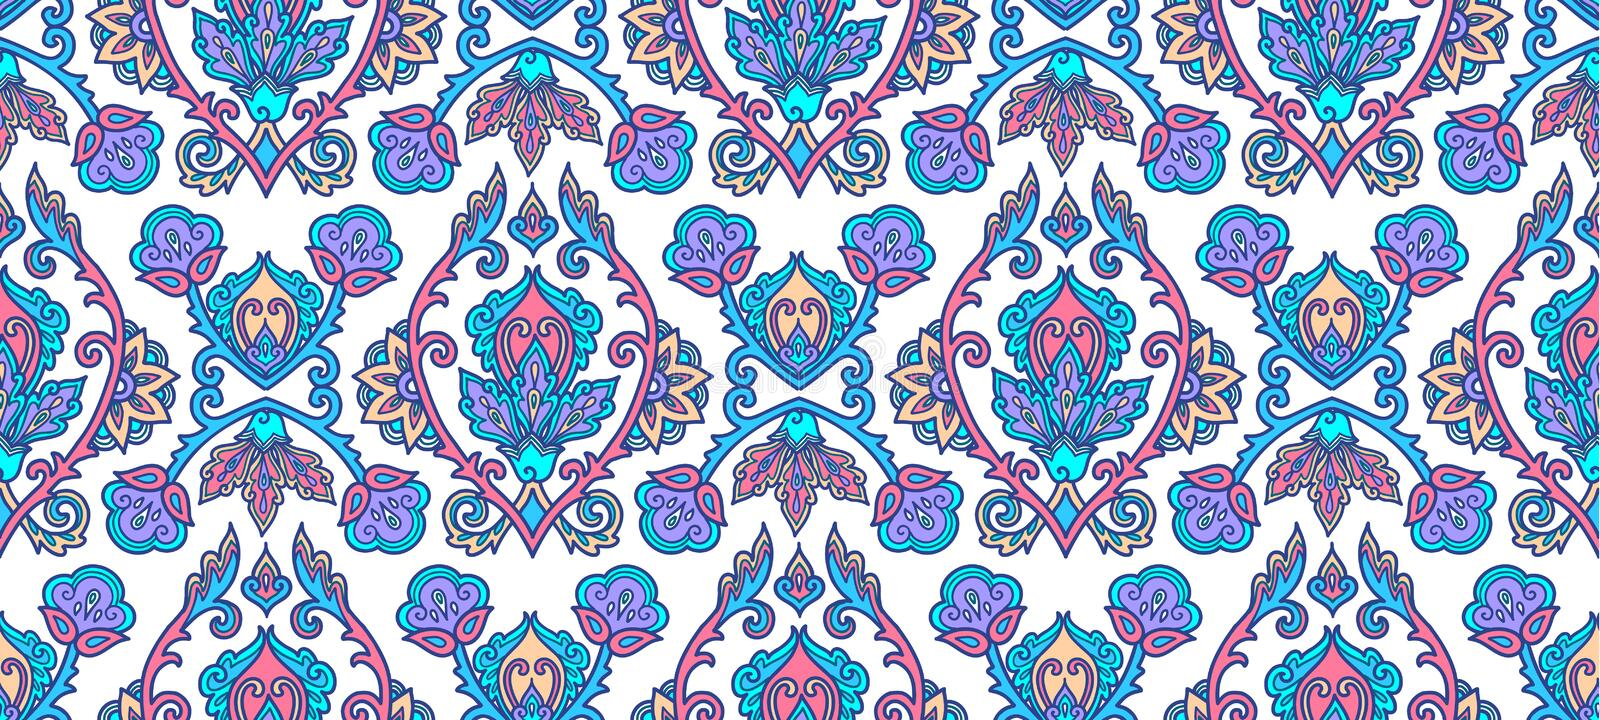 Moroccan style blue lineart traditional Turkish floral ornament on white background, vector seamless pattern tile royalty free illustration